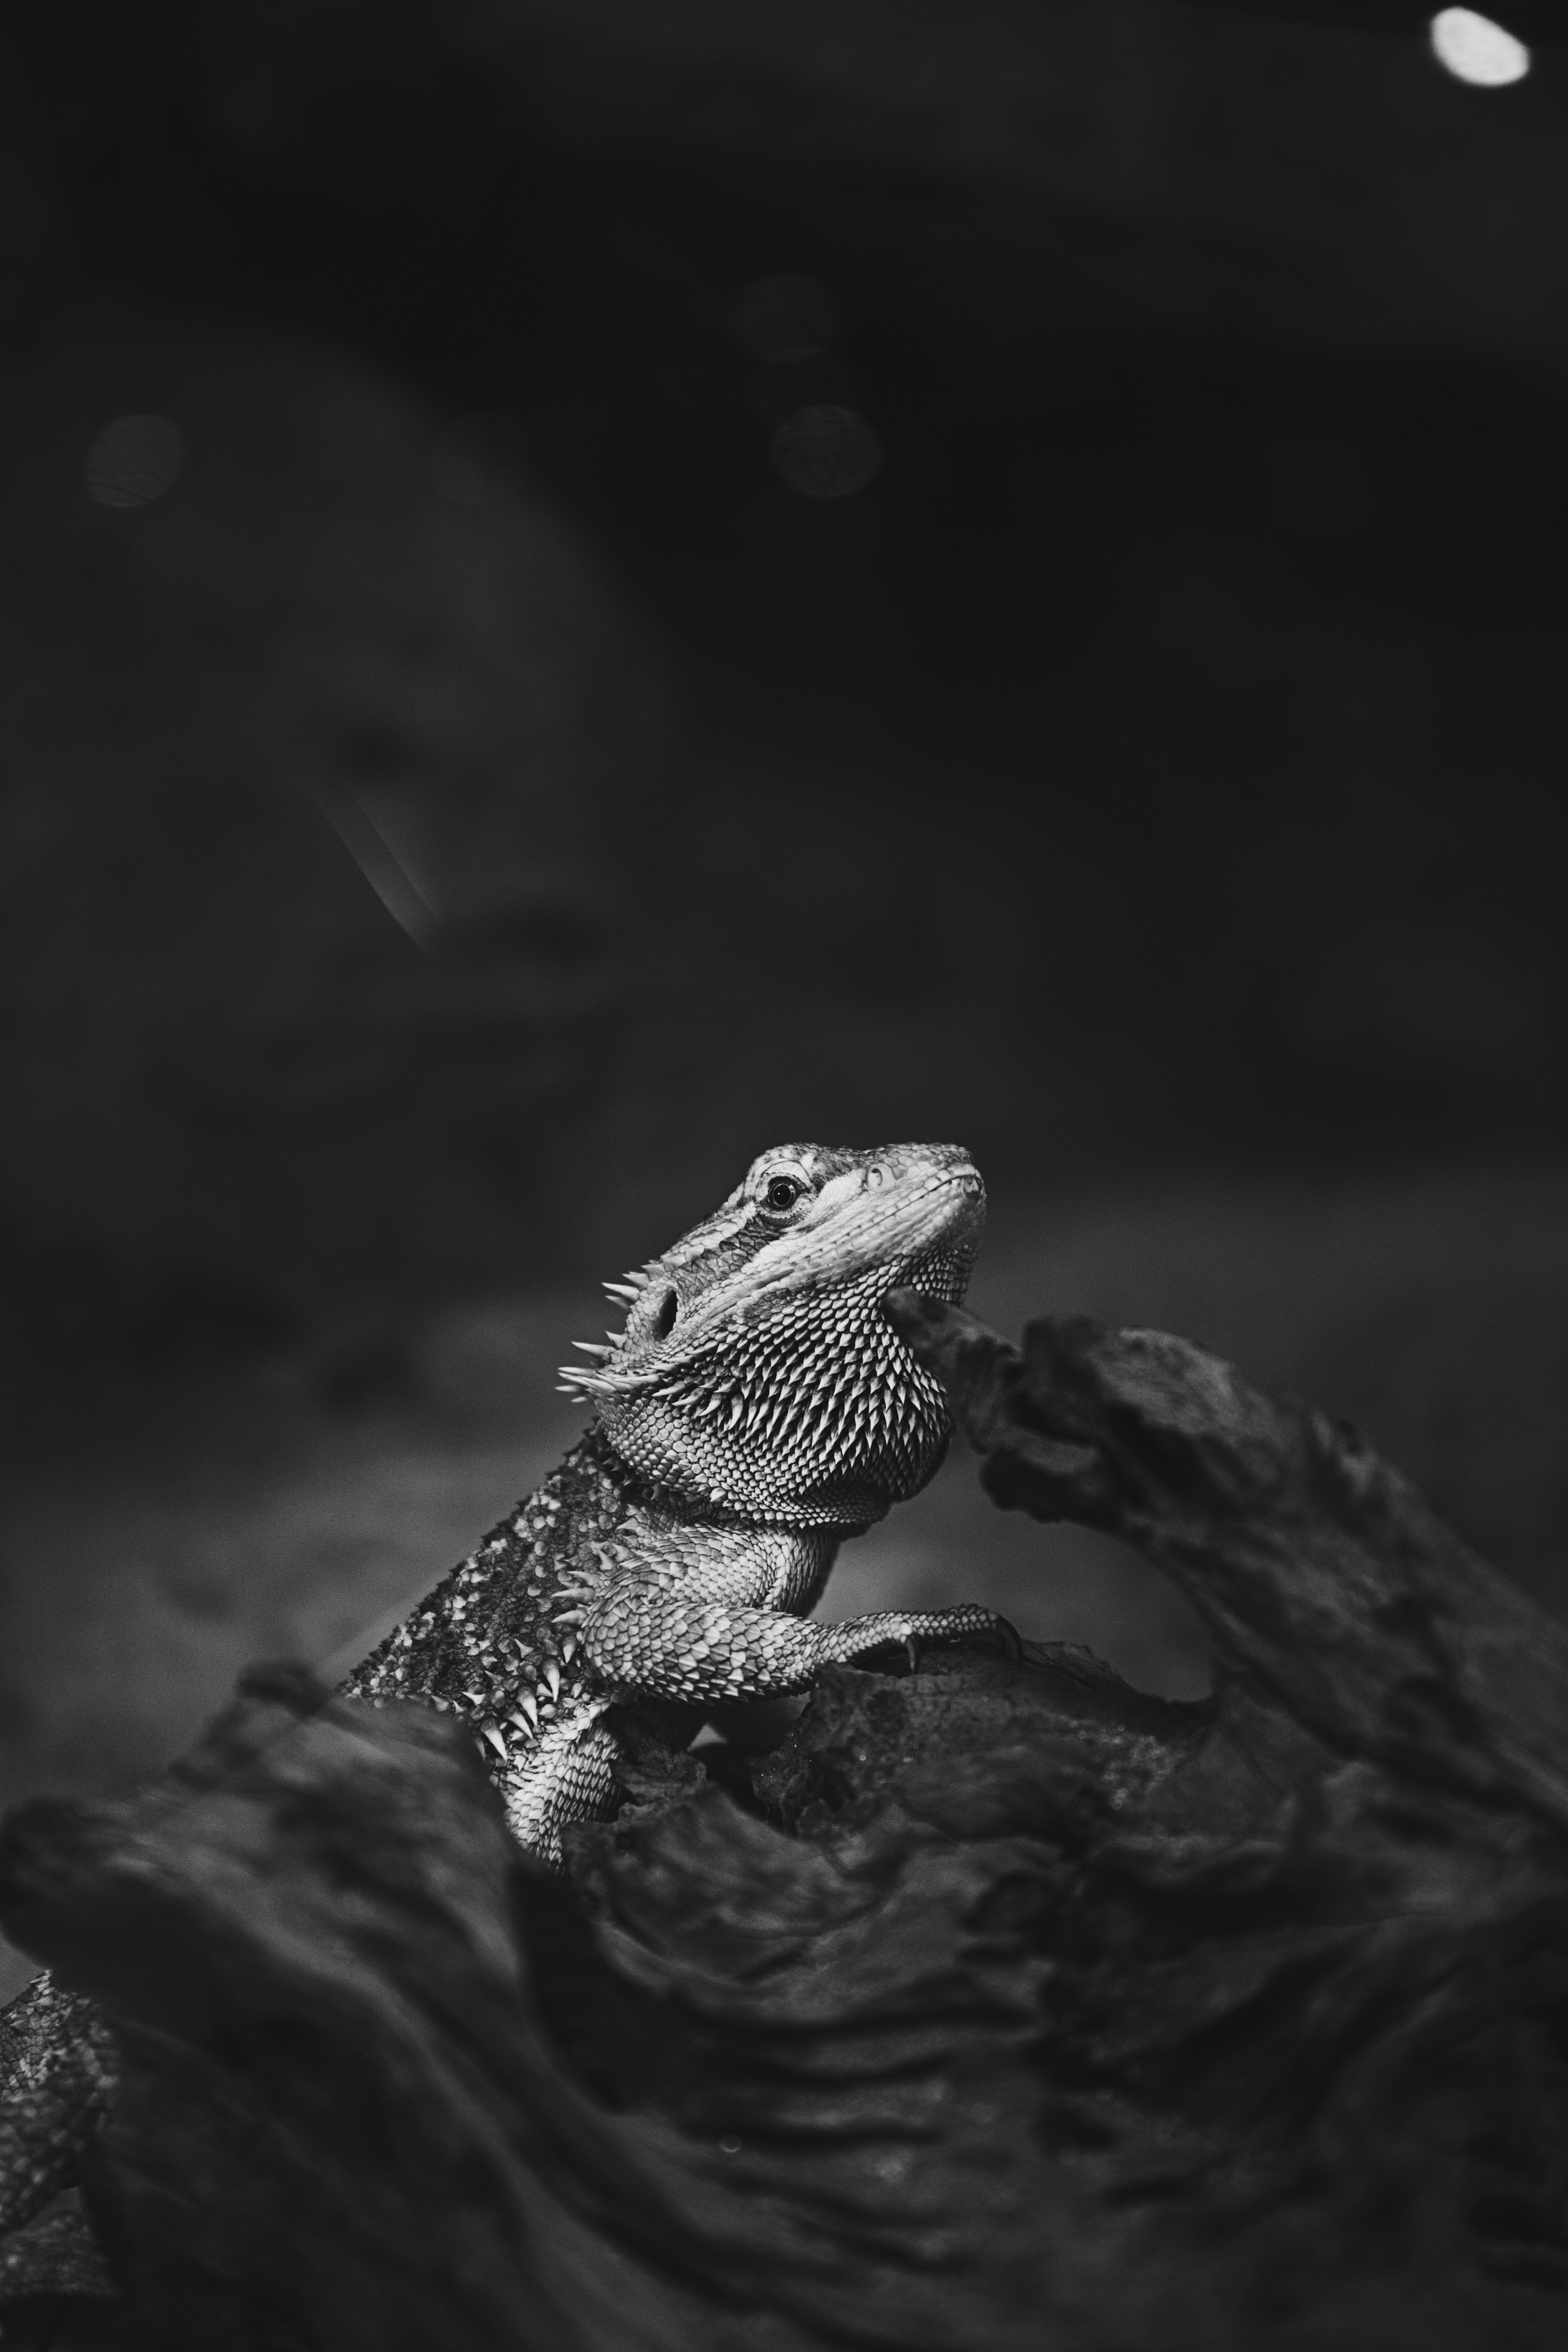 A black-and-white shot of a lizard sitting on a piece of wood